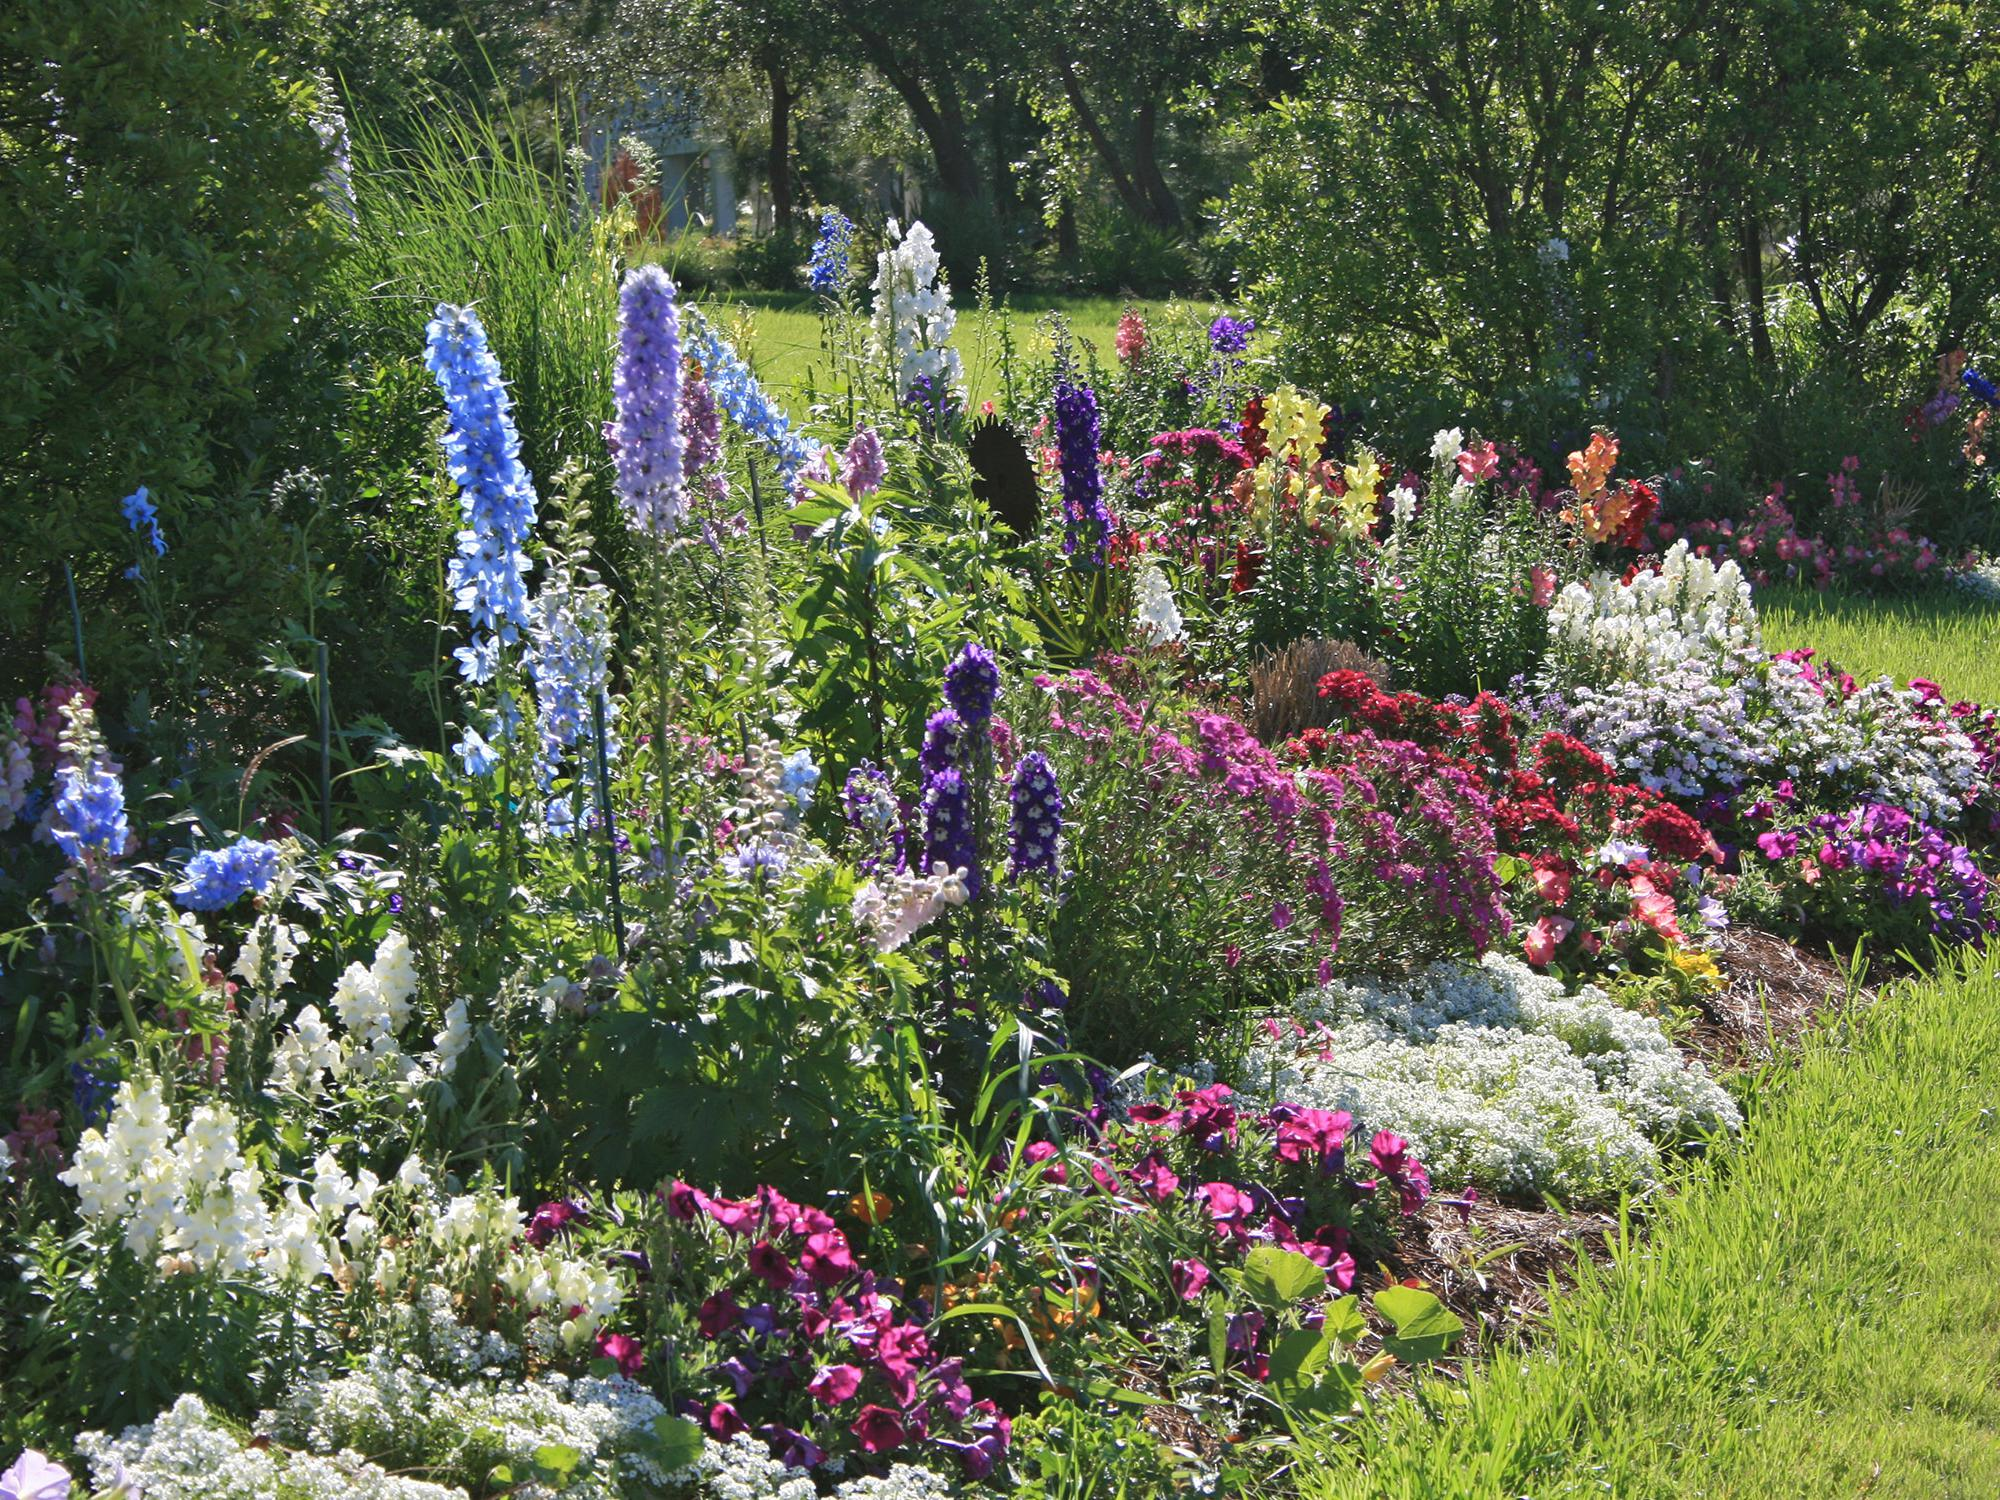 Give gardens the gift of organic matter in the fall to thank them for their beauty and bounty and prepare them for the next growing season. (Photo by MSU Extension Service/Gary Bachman)